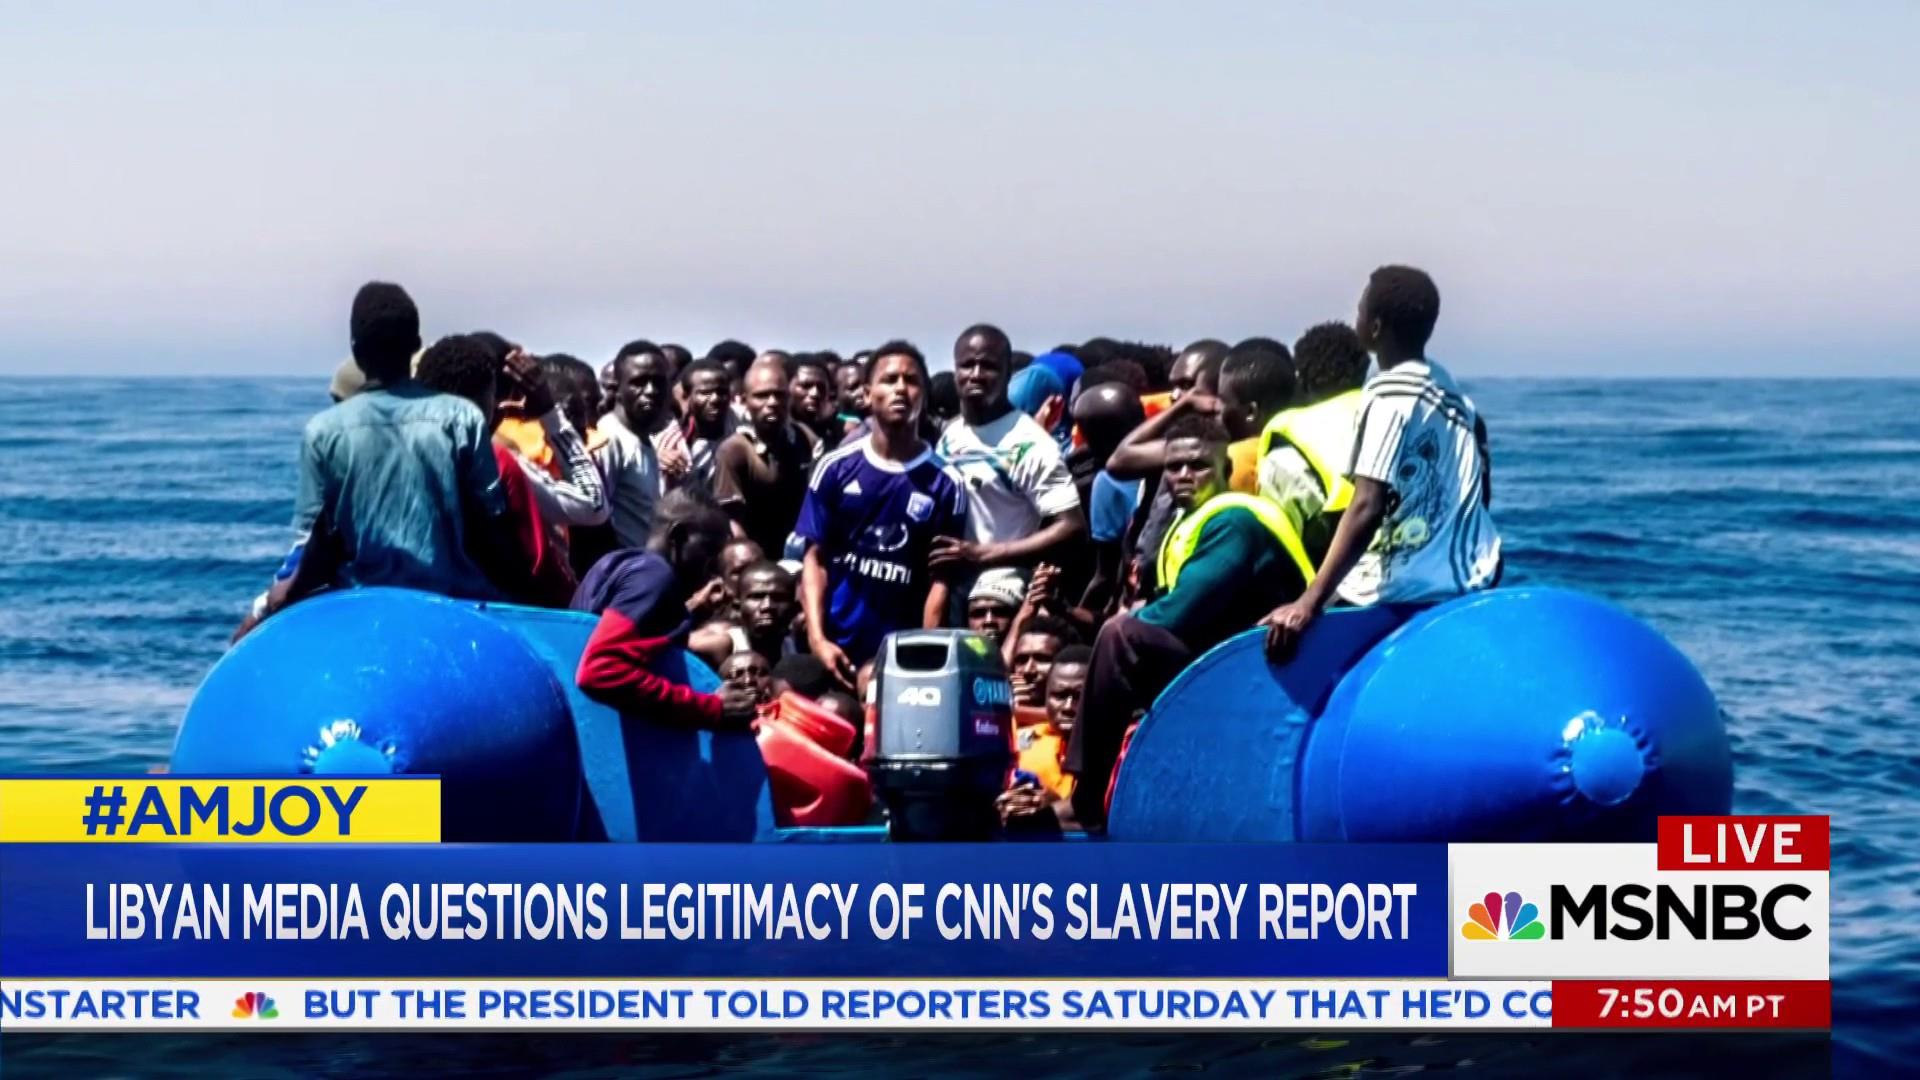 Libya slavery: Libyan slave trade revealed in shocking report